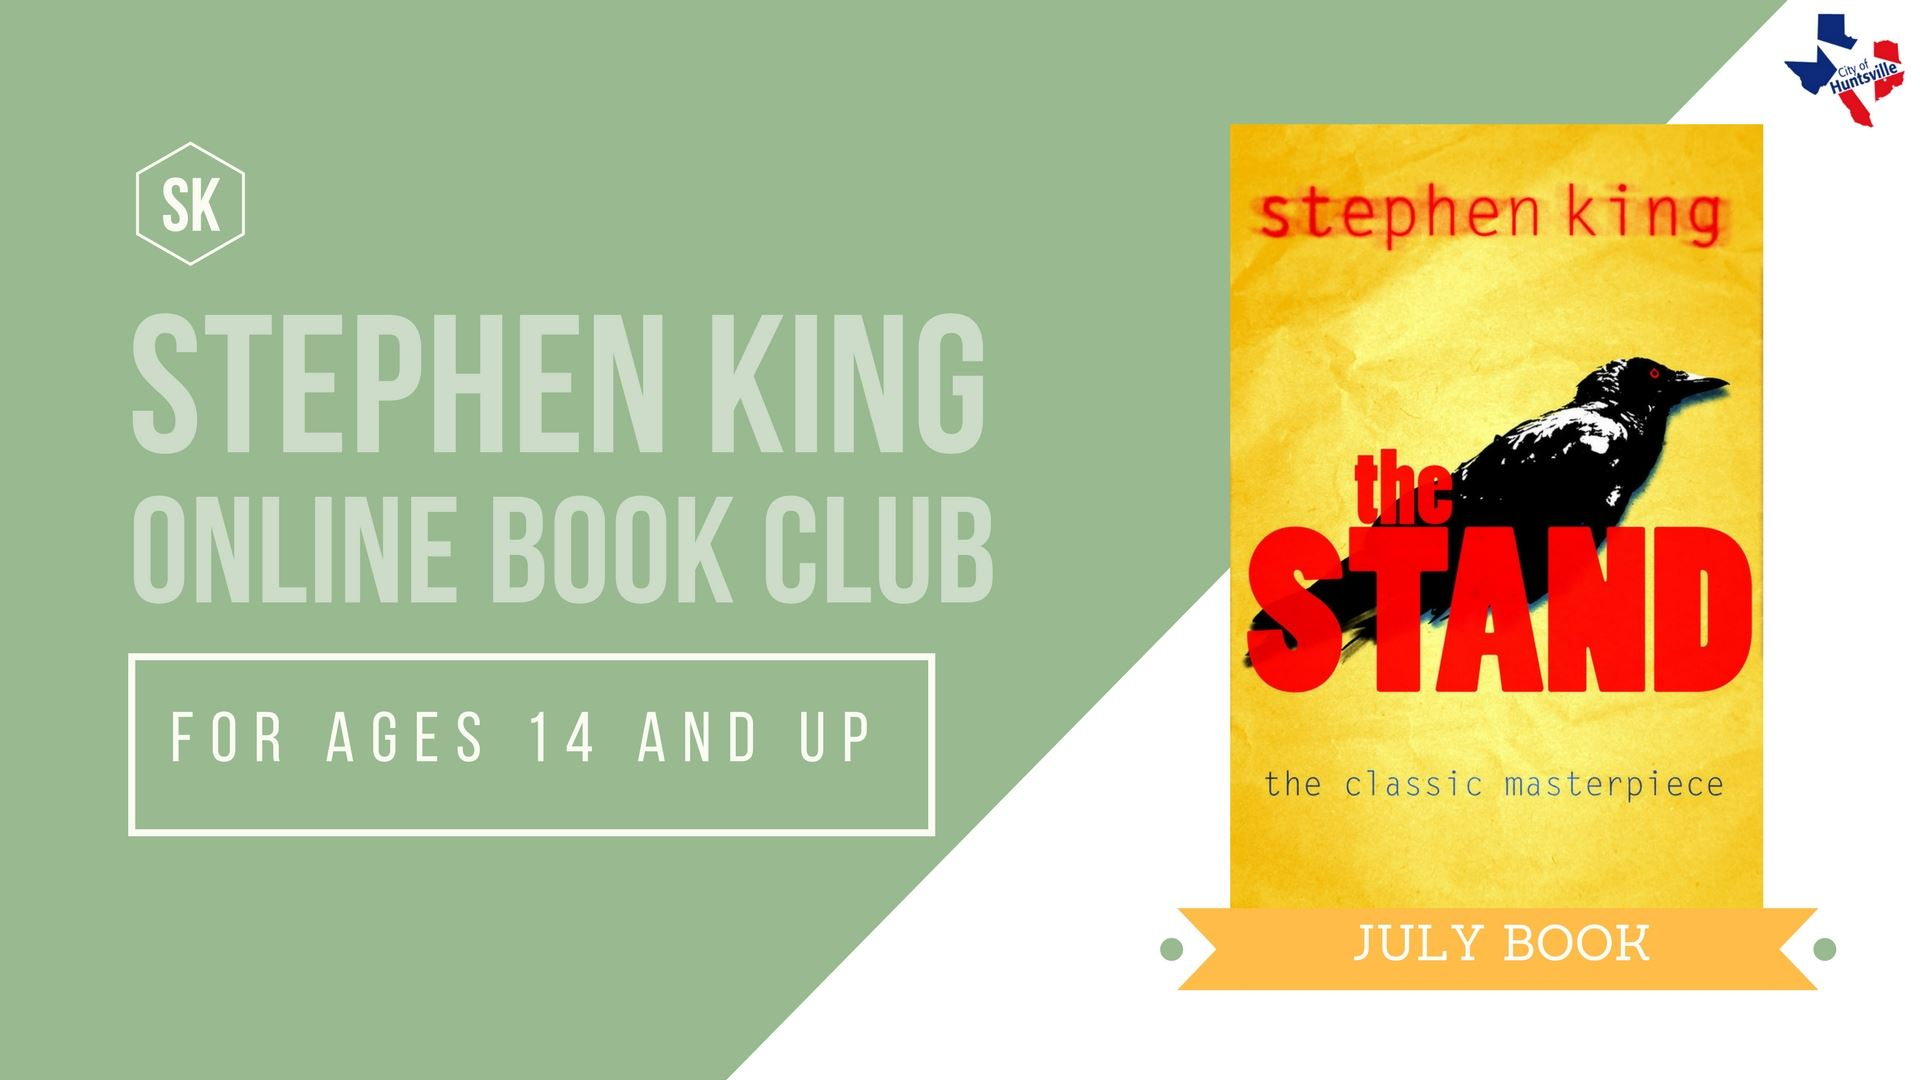 STEPHEN KING JULY